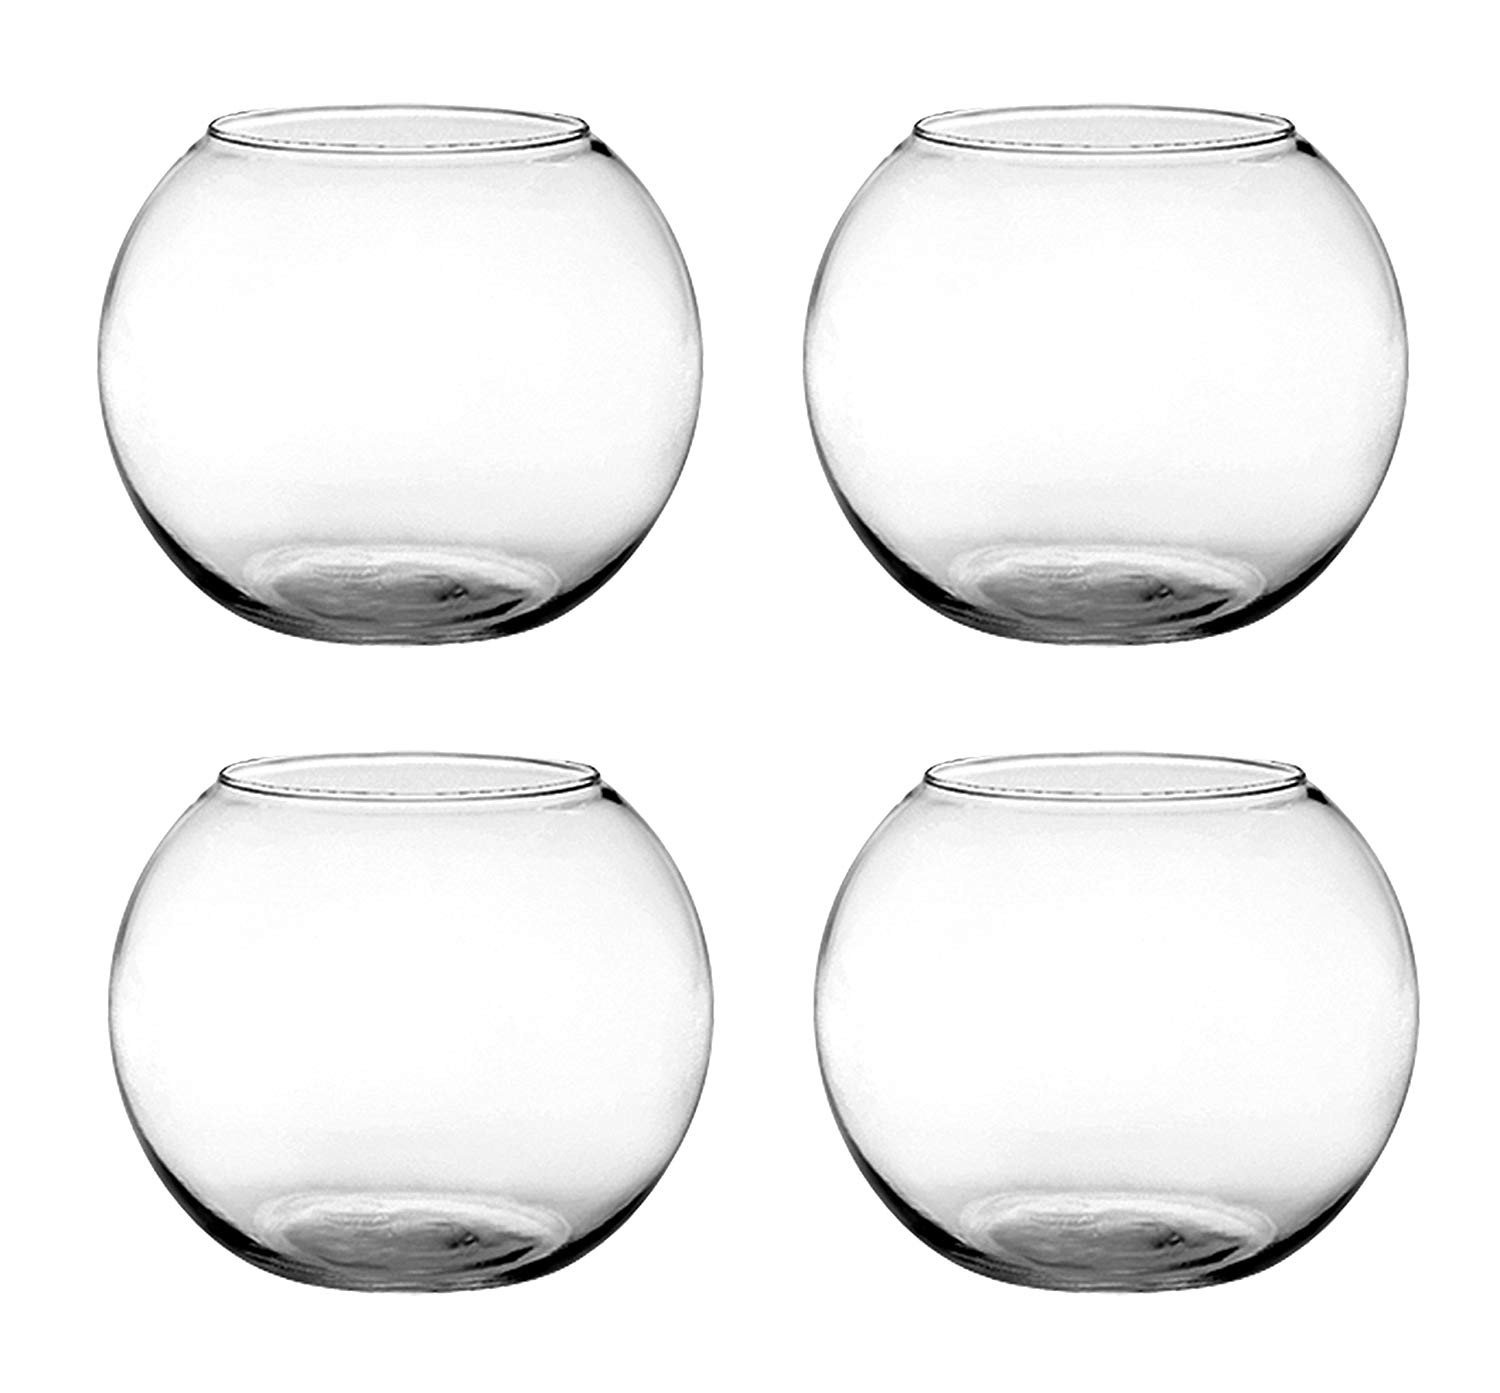 multi colored glass vases of amazon com set of 4 syndicate sales 6 inches clear rose bowl inside amazon com set of 4 syndicate sales 6 inches clear rose bowl bundled by maven gifts garden outdoor